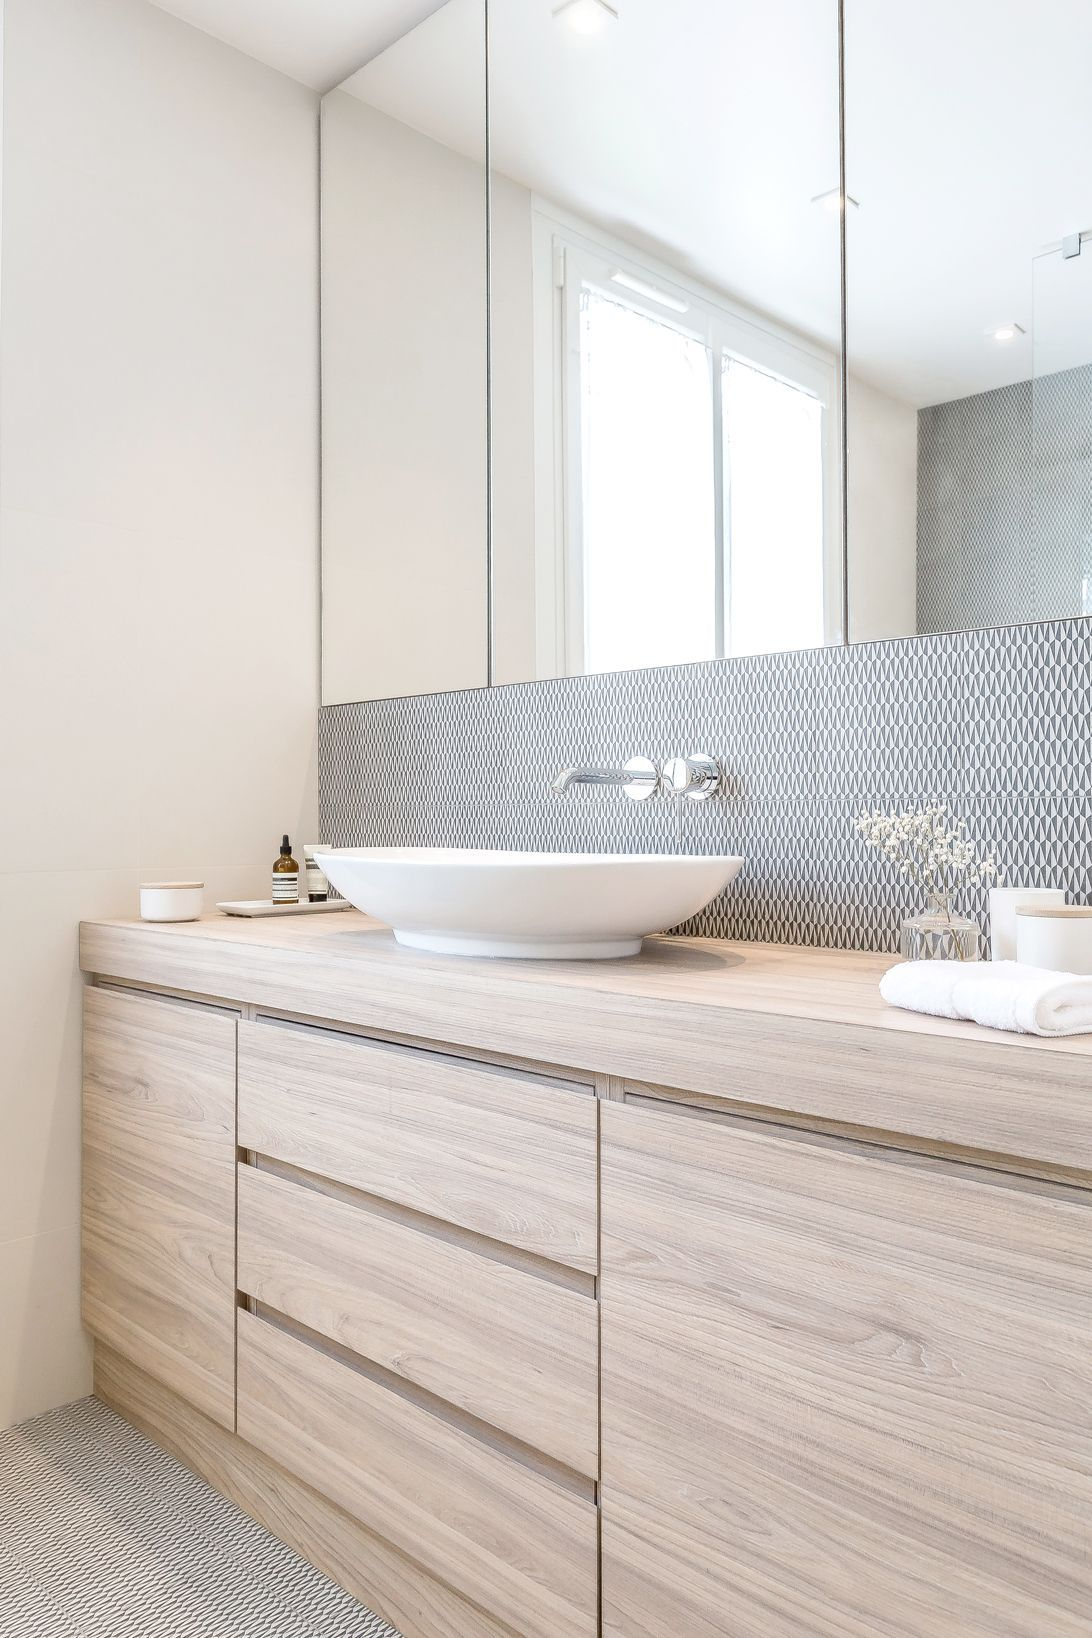 Badkamer 6 M 6 Tips To Make Your Bathroom Renovation Look Amazing It S All